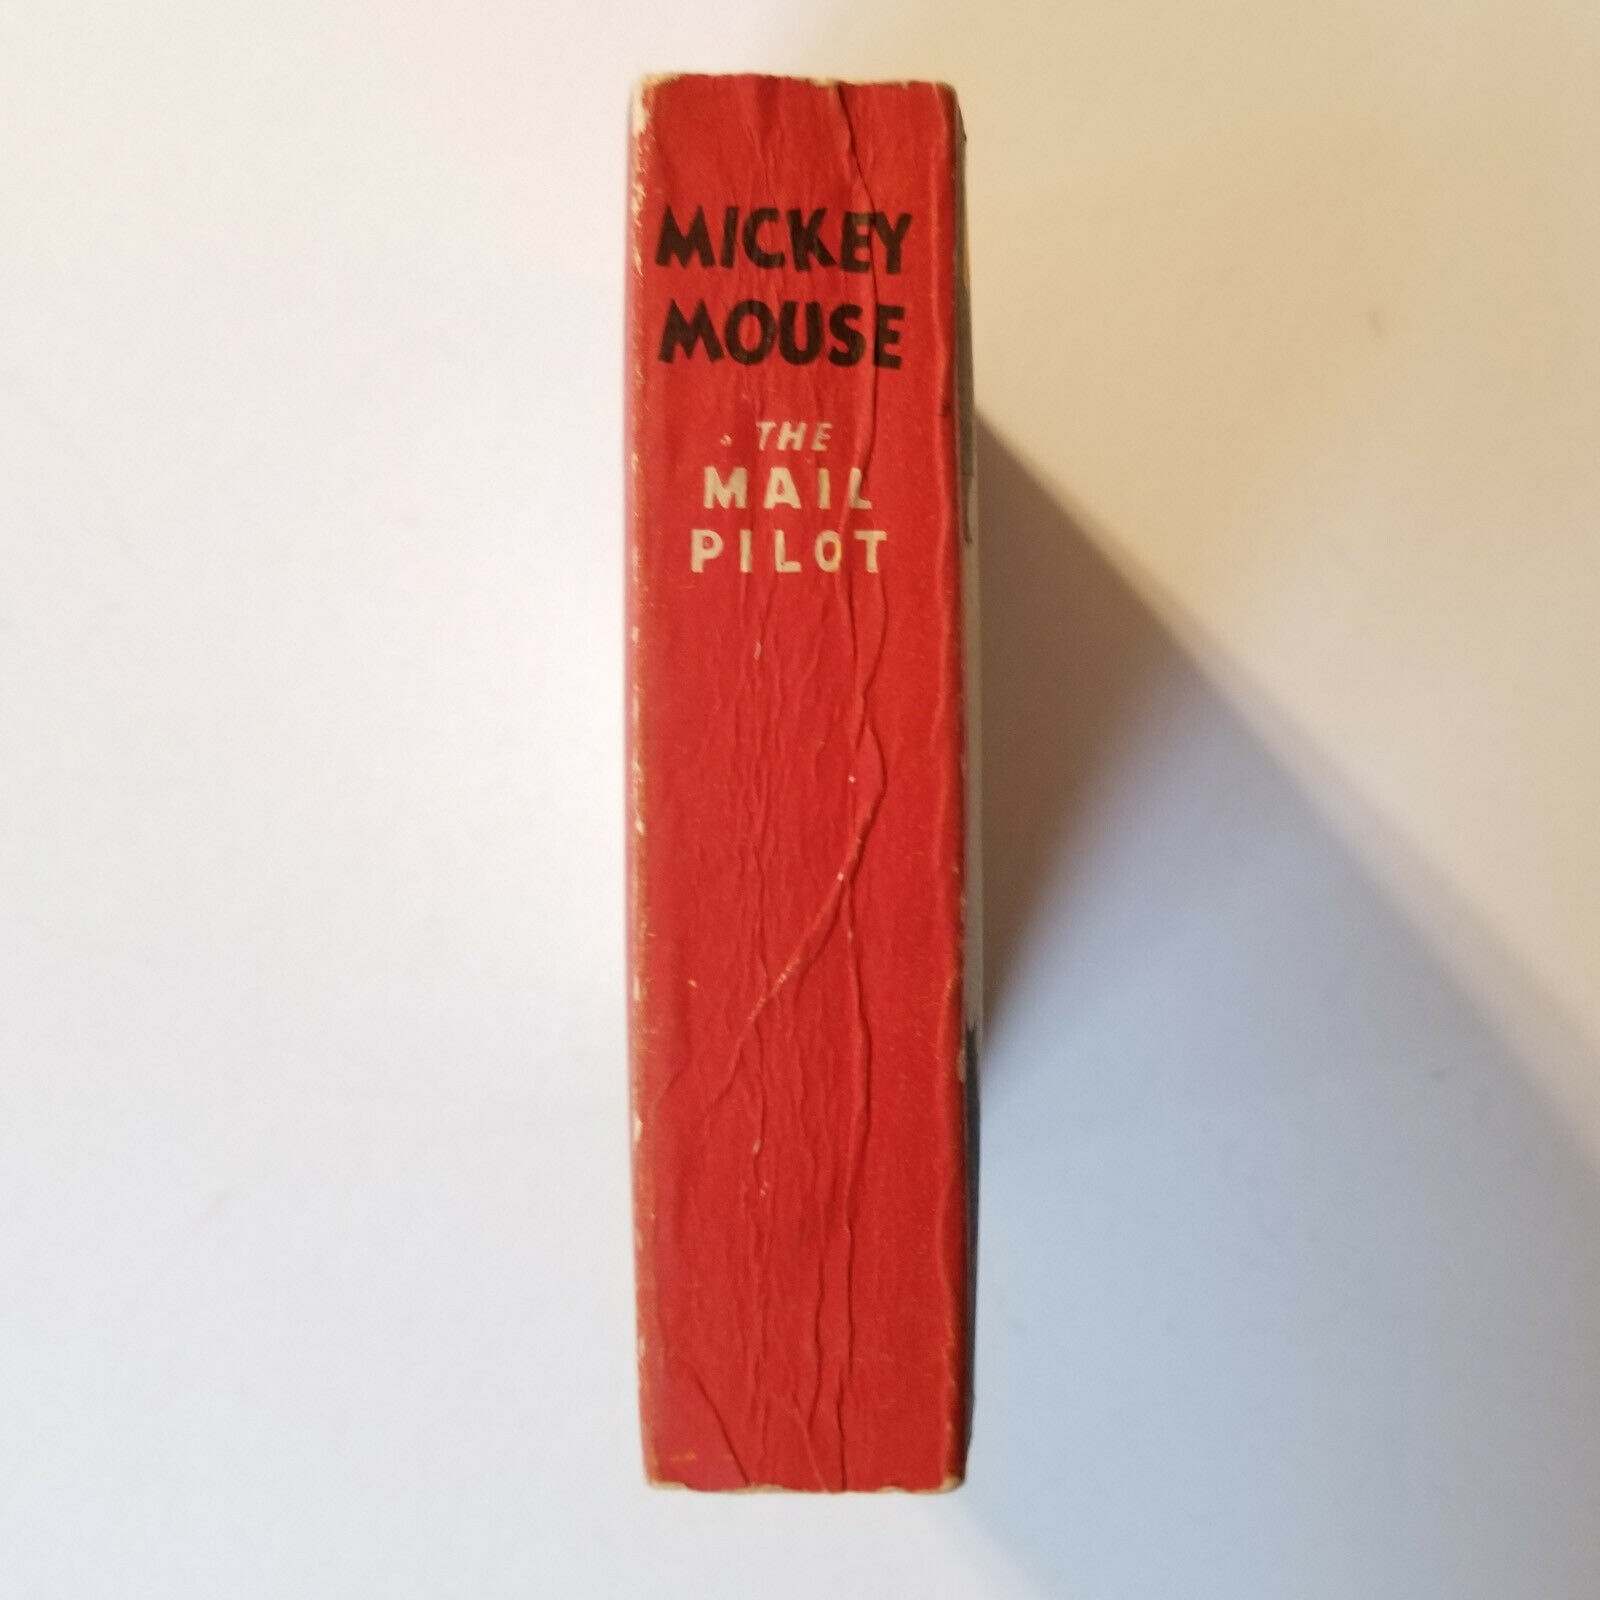 RARE 1933 Mickey Mouse The Mail Pilot NO# NO AD 320p Big Little Book Soft Cover